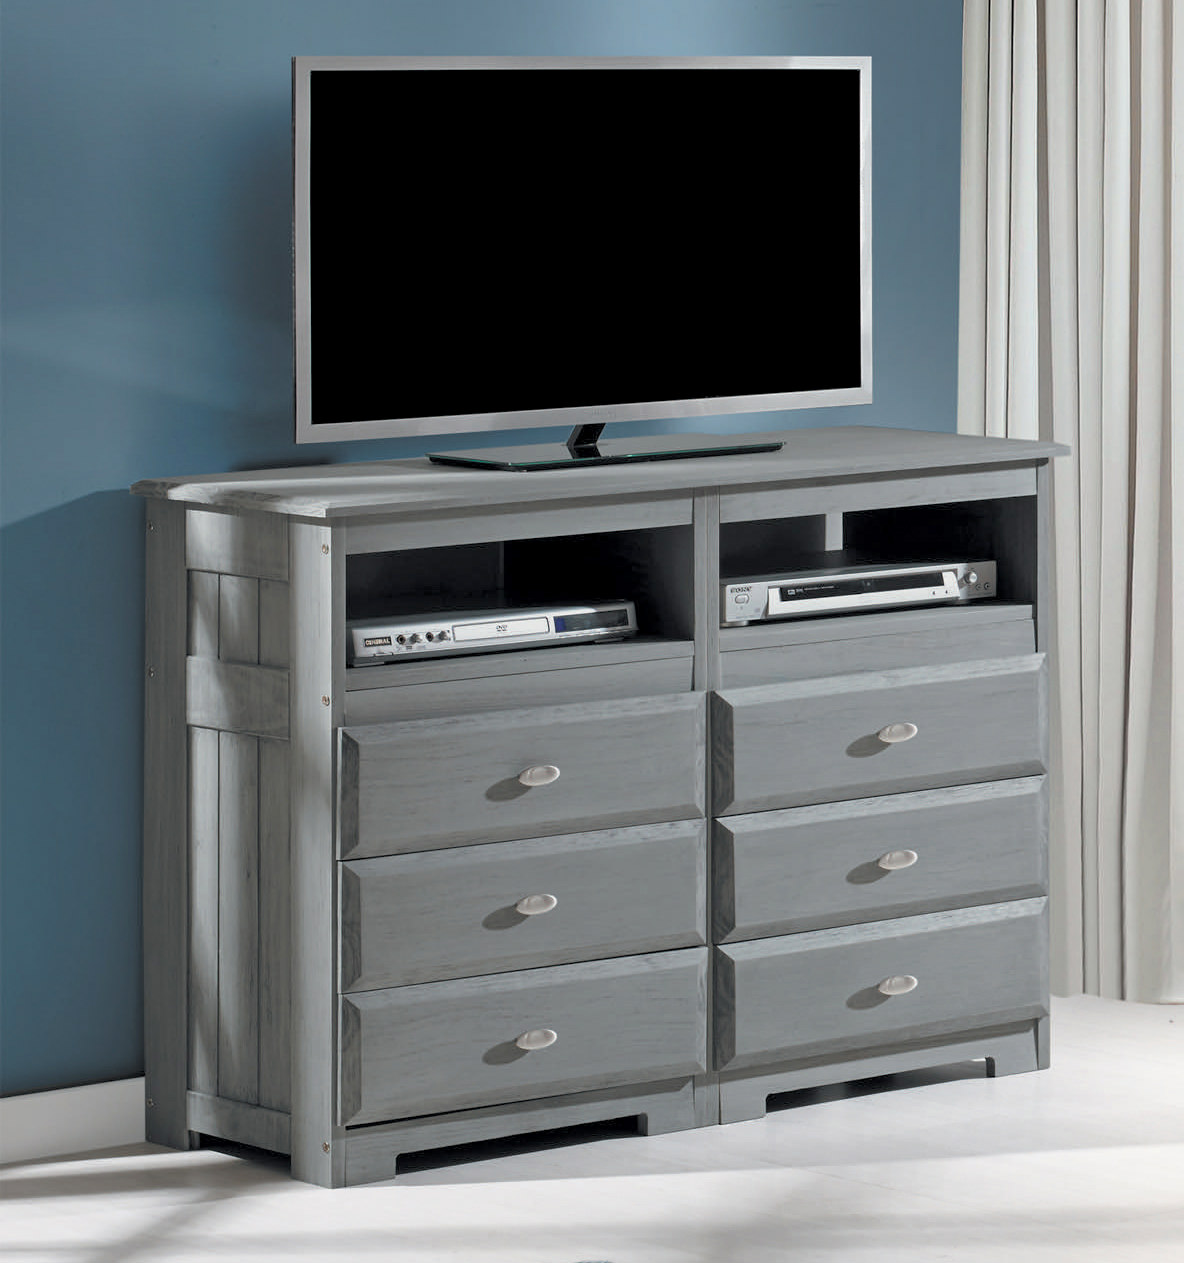 American Furniture Classics Solid Pine Entertainment Dresser with Six Drawers and Two Component Areas in Charcoal